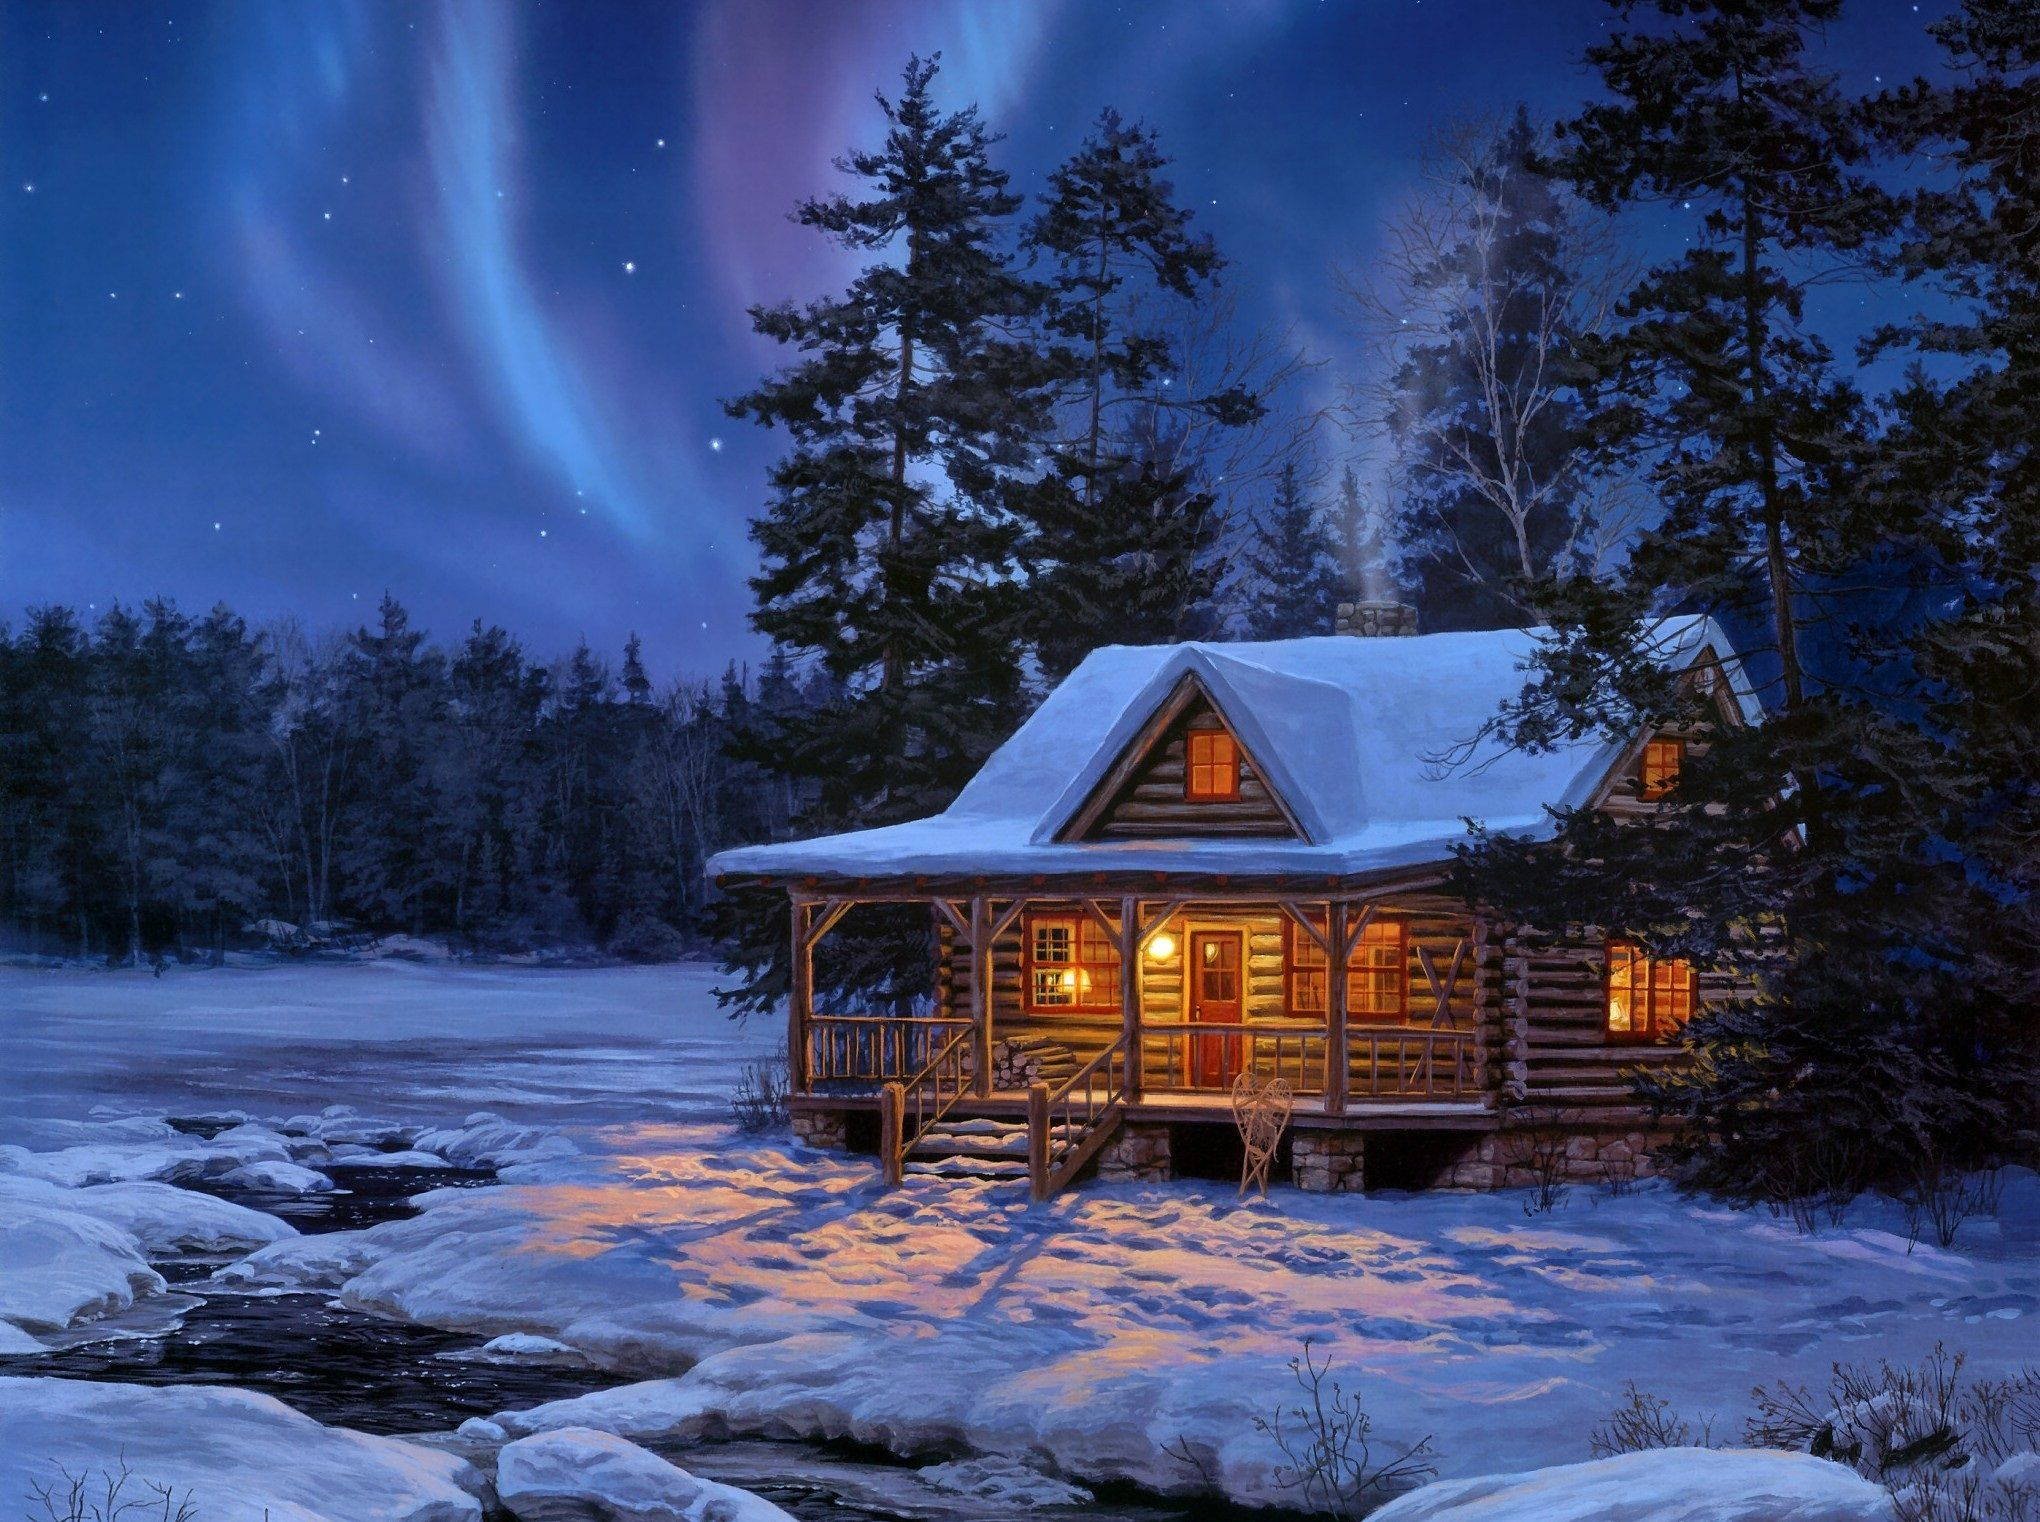 Hd A Small Cottage In The Snowy Woods Wallpaper Download